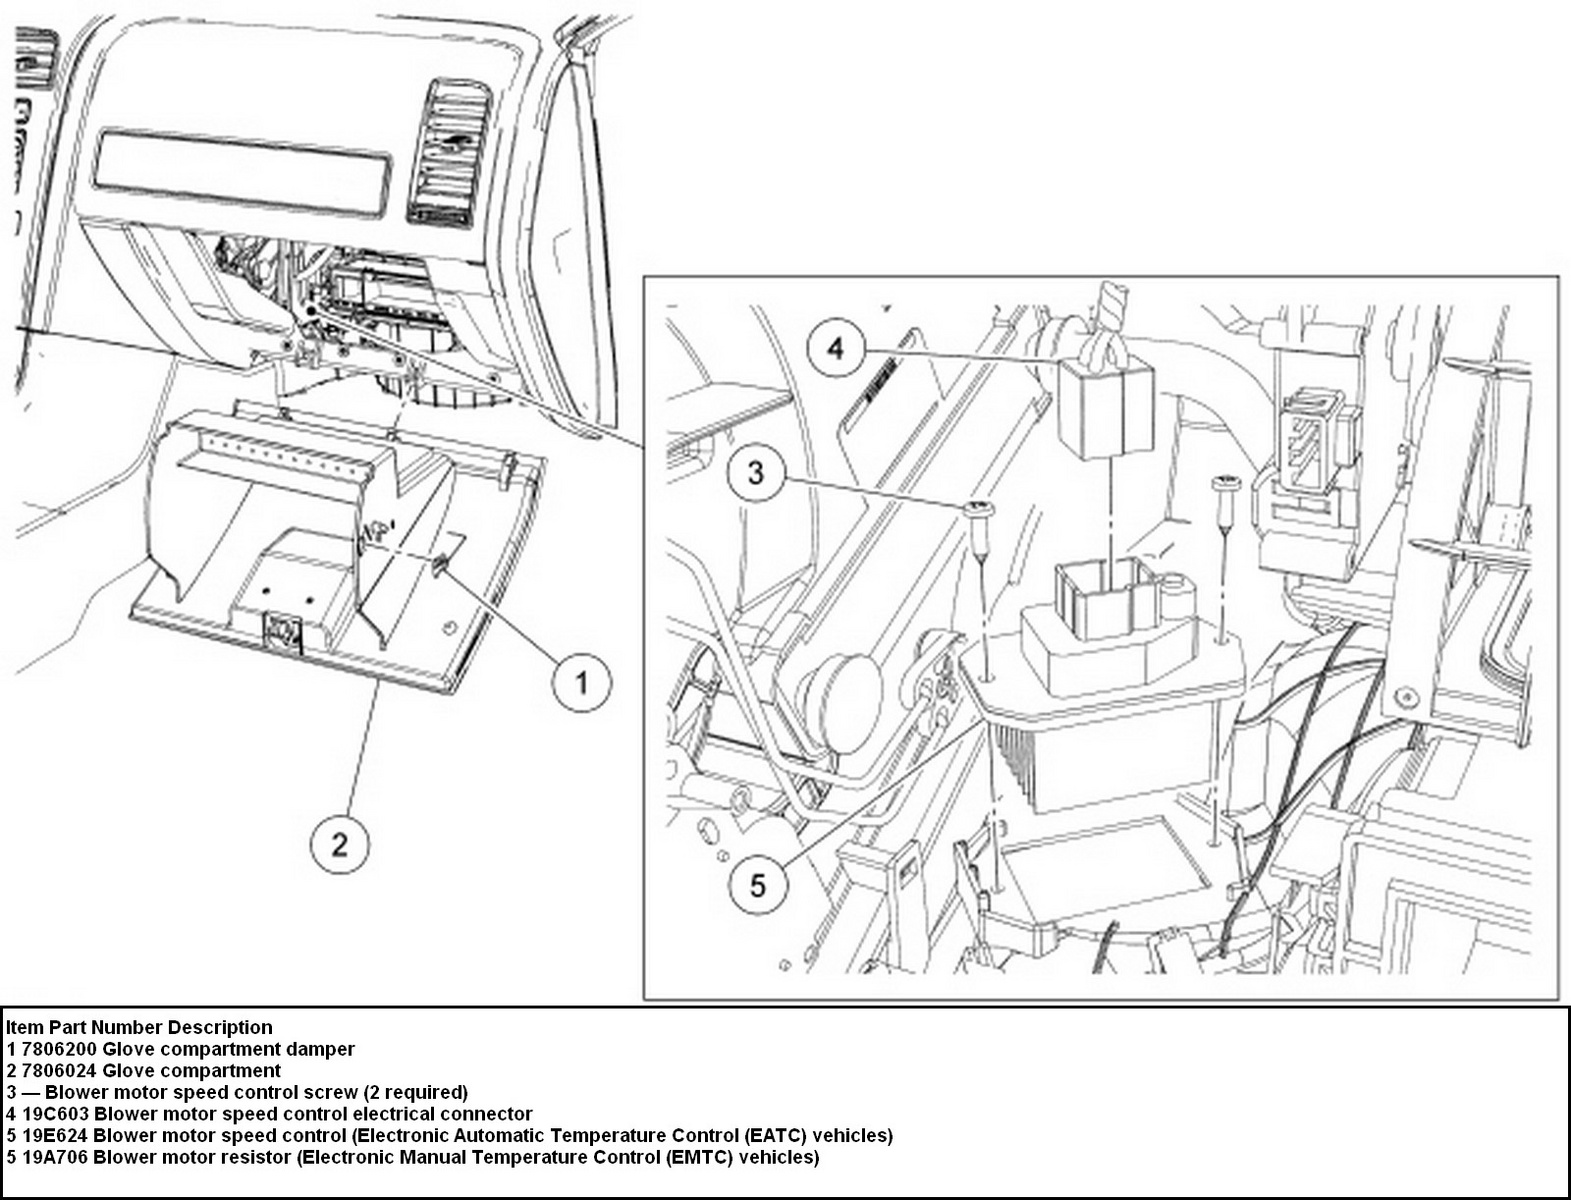 Ford Edge Cabin Air Filter Location Ford Free Engine Image For User Manual Download